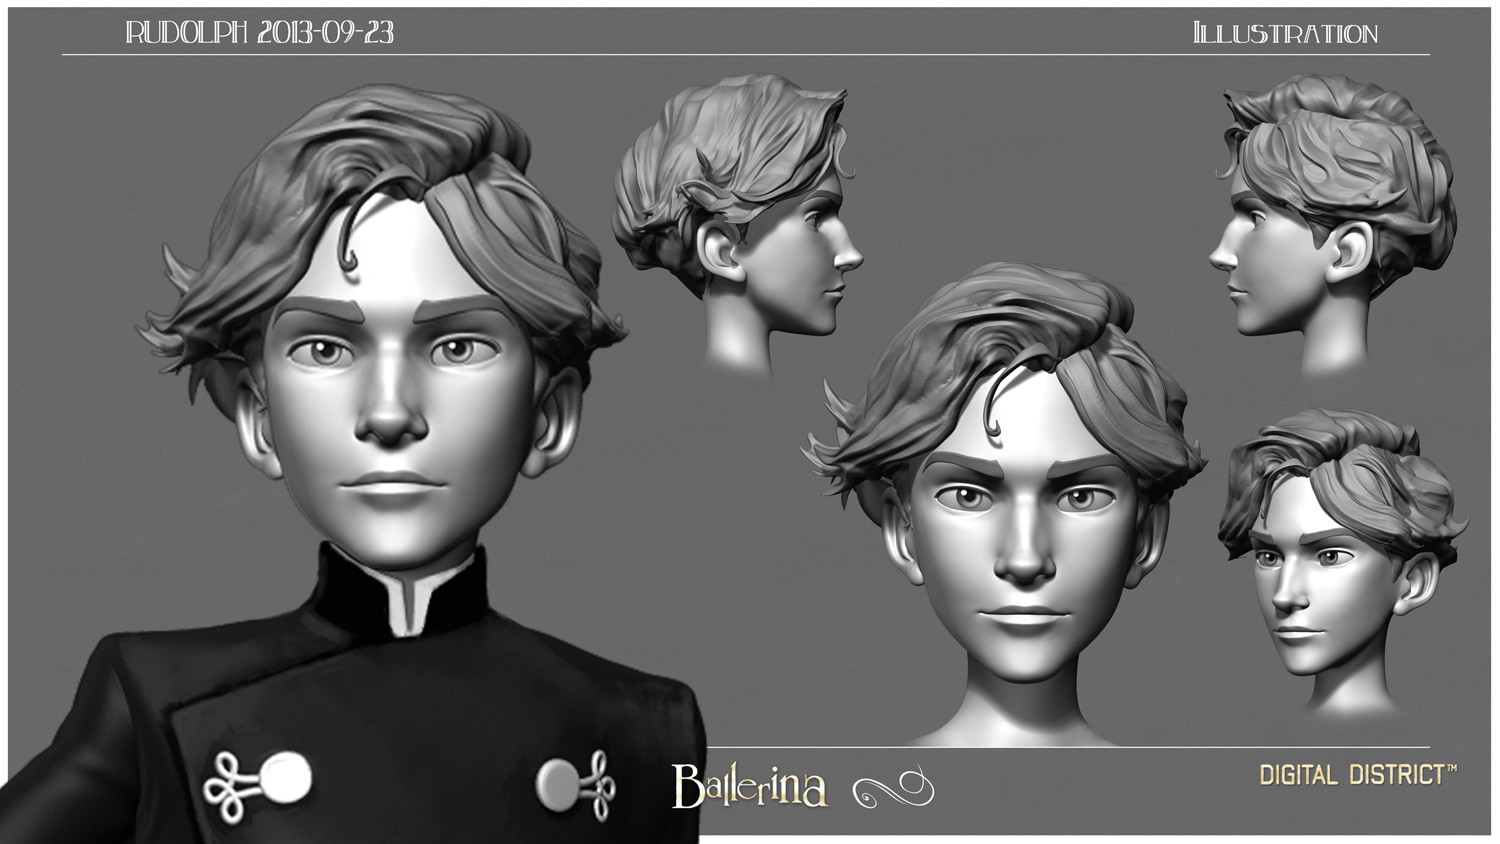 Sculpt on the base mesh for the face.